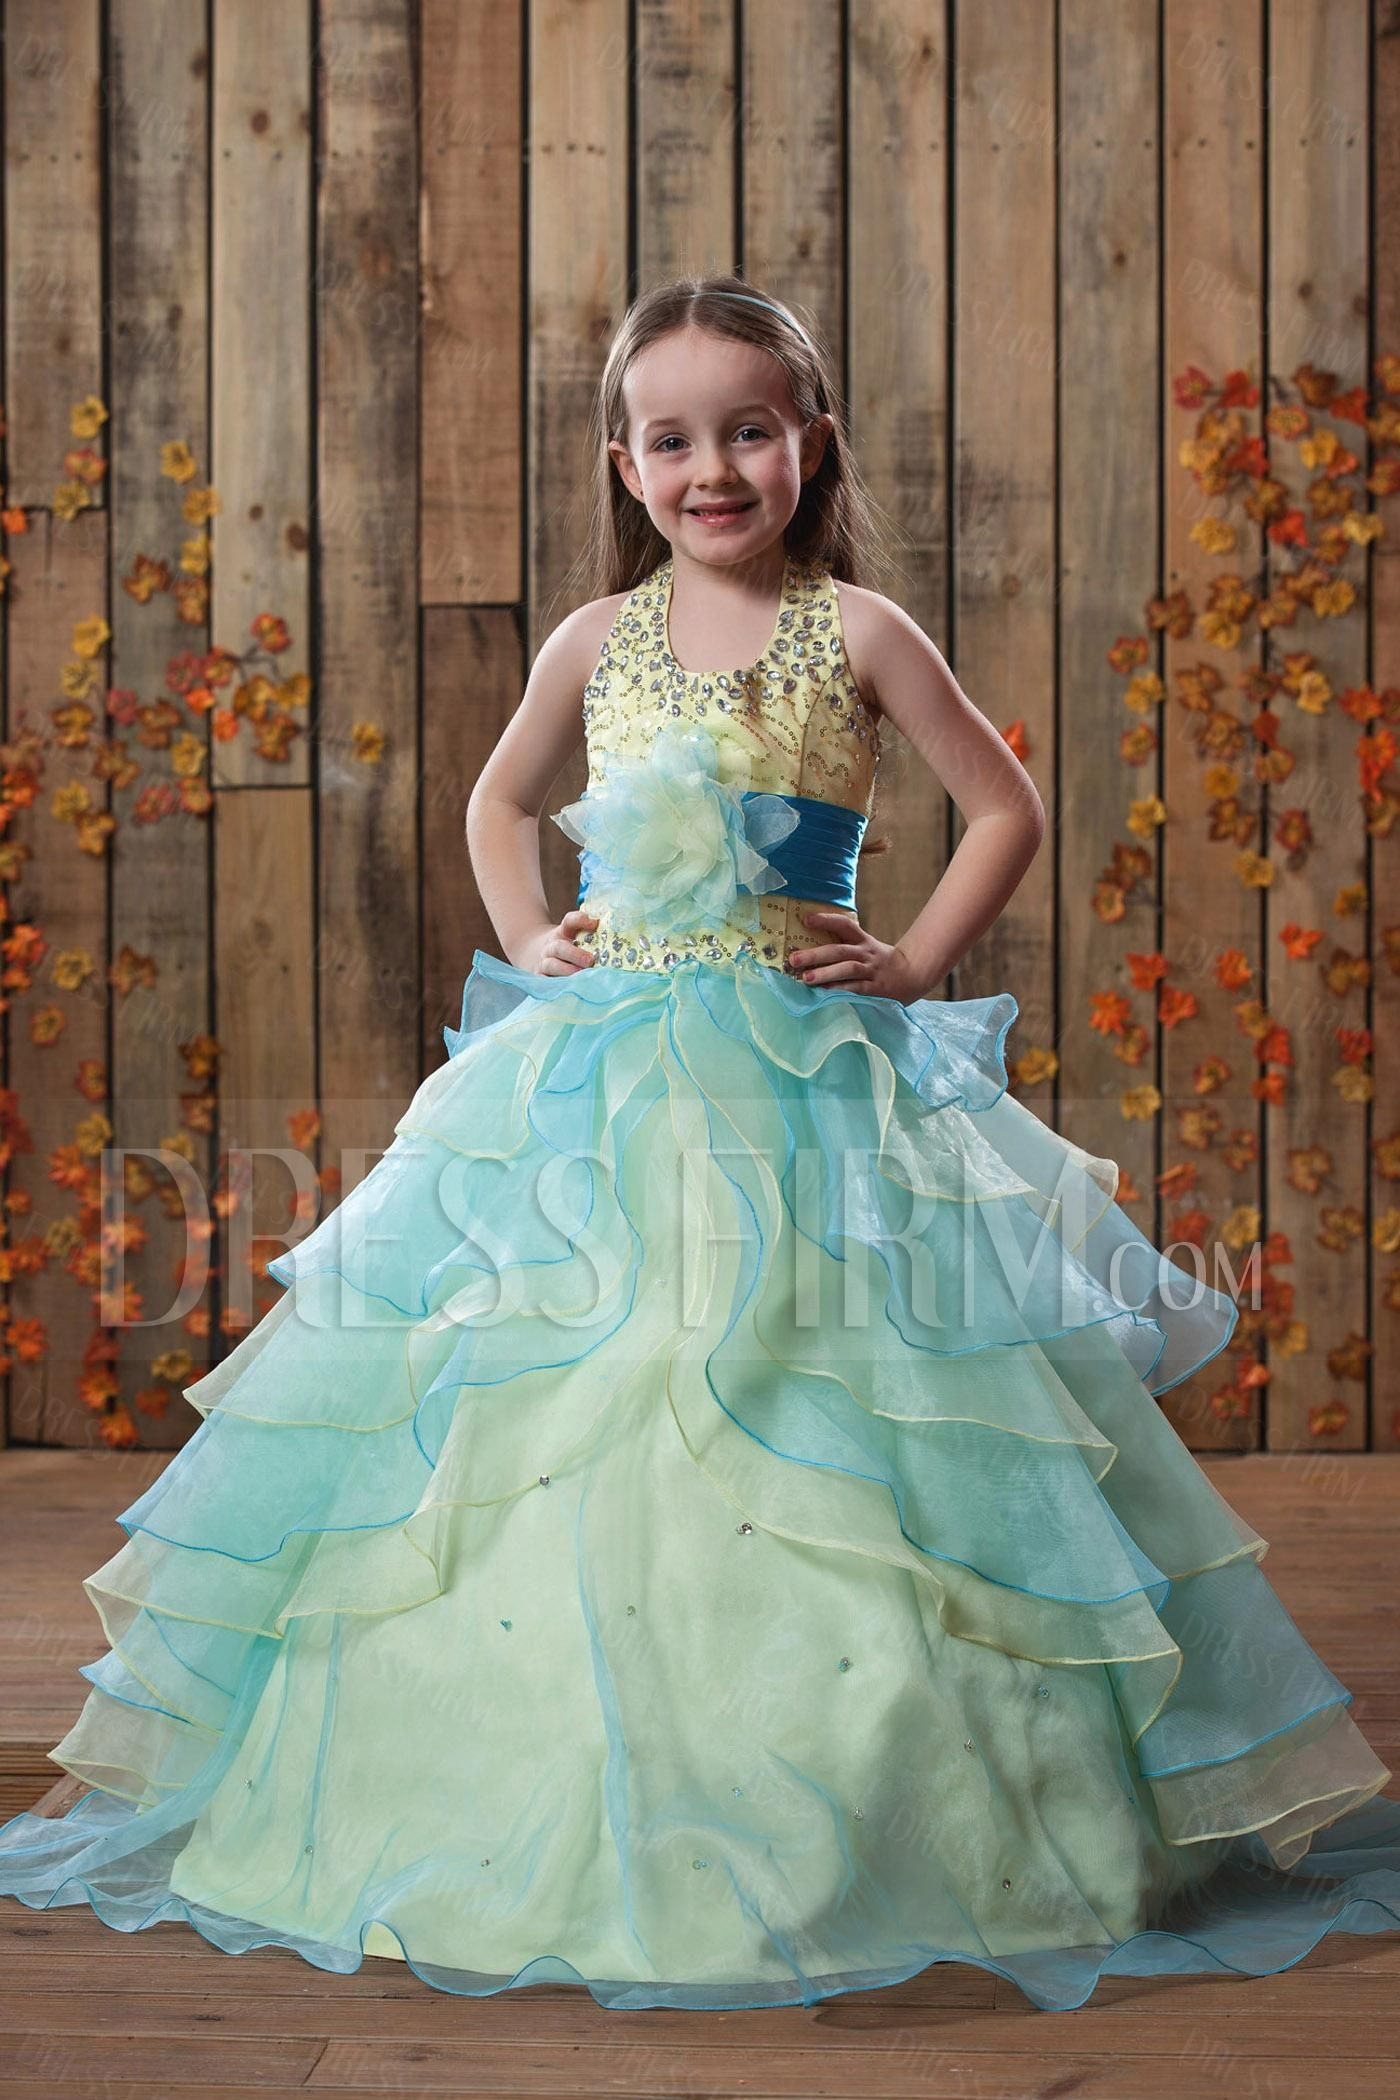 flower girl dresses | ... for Fashion Flower Girl Dresses: flower ...